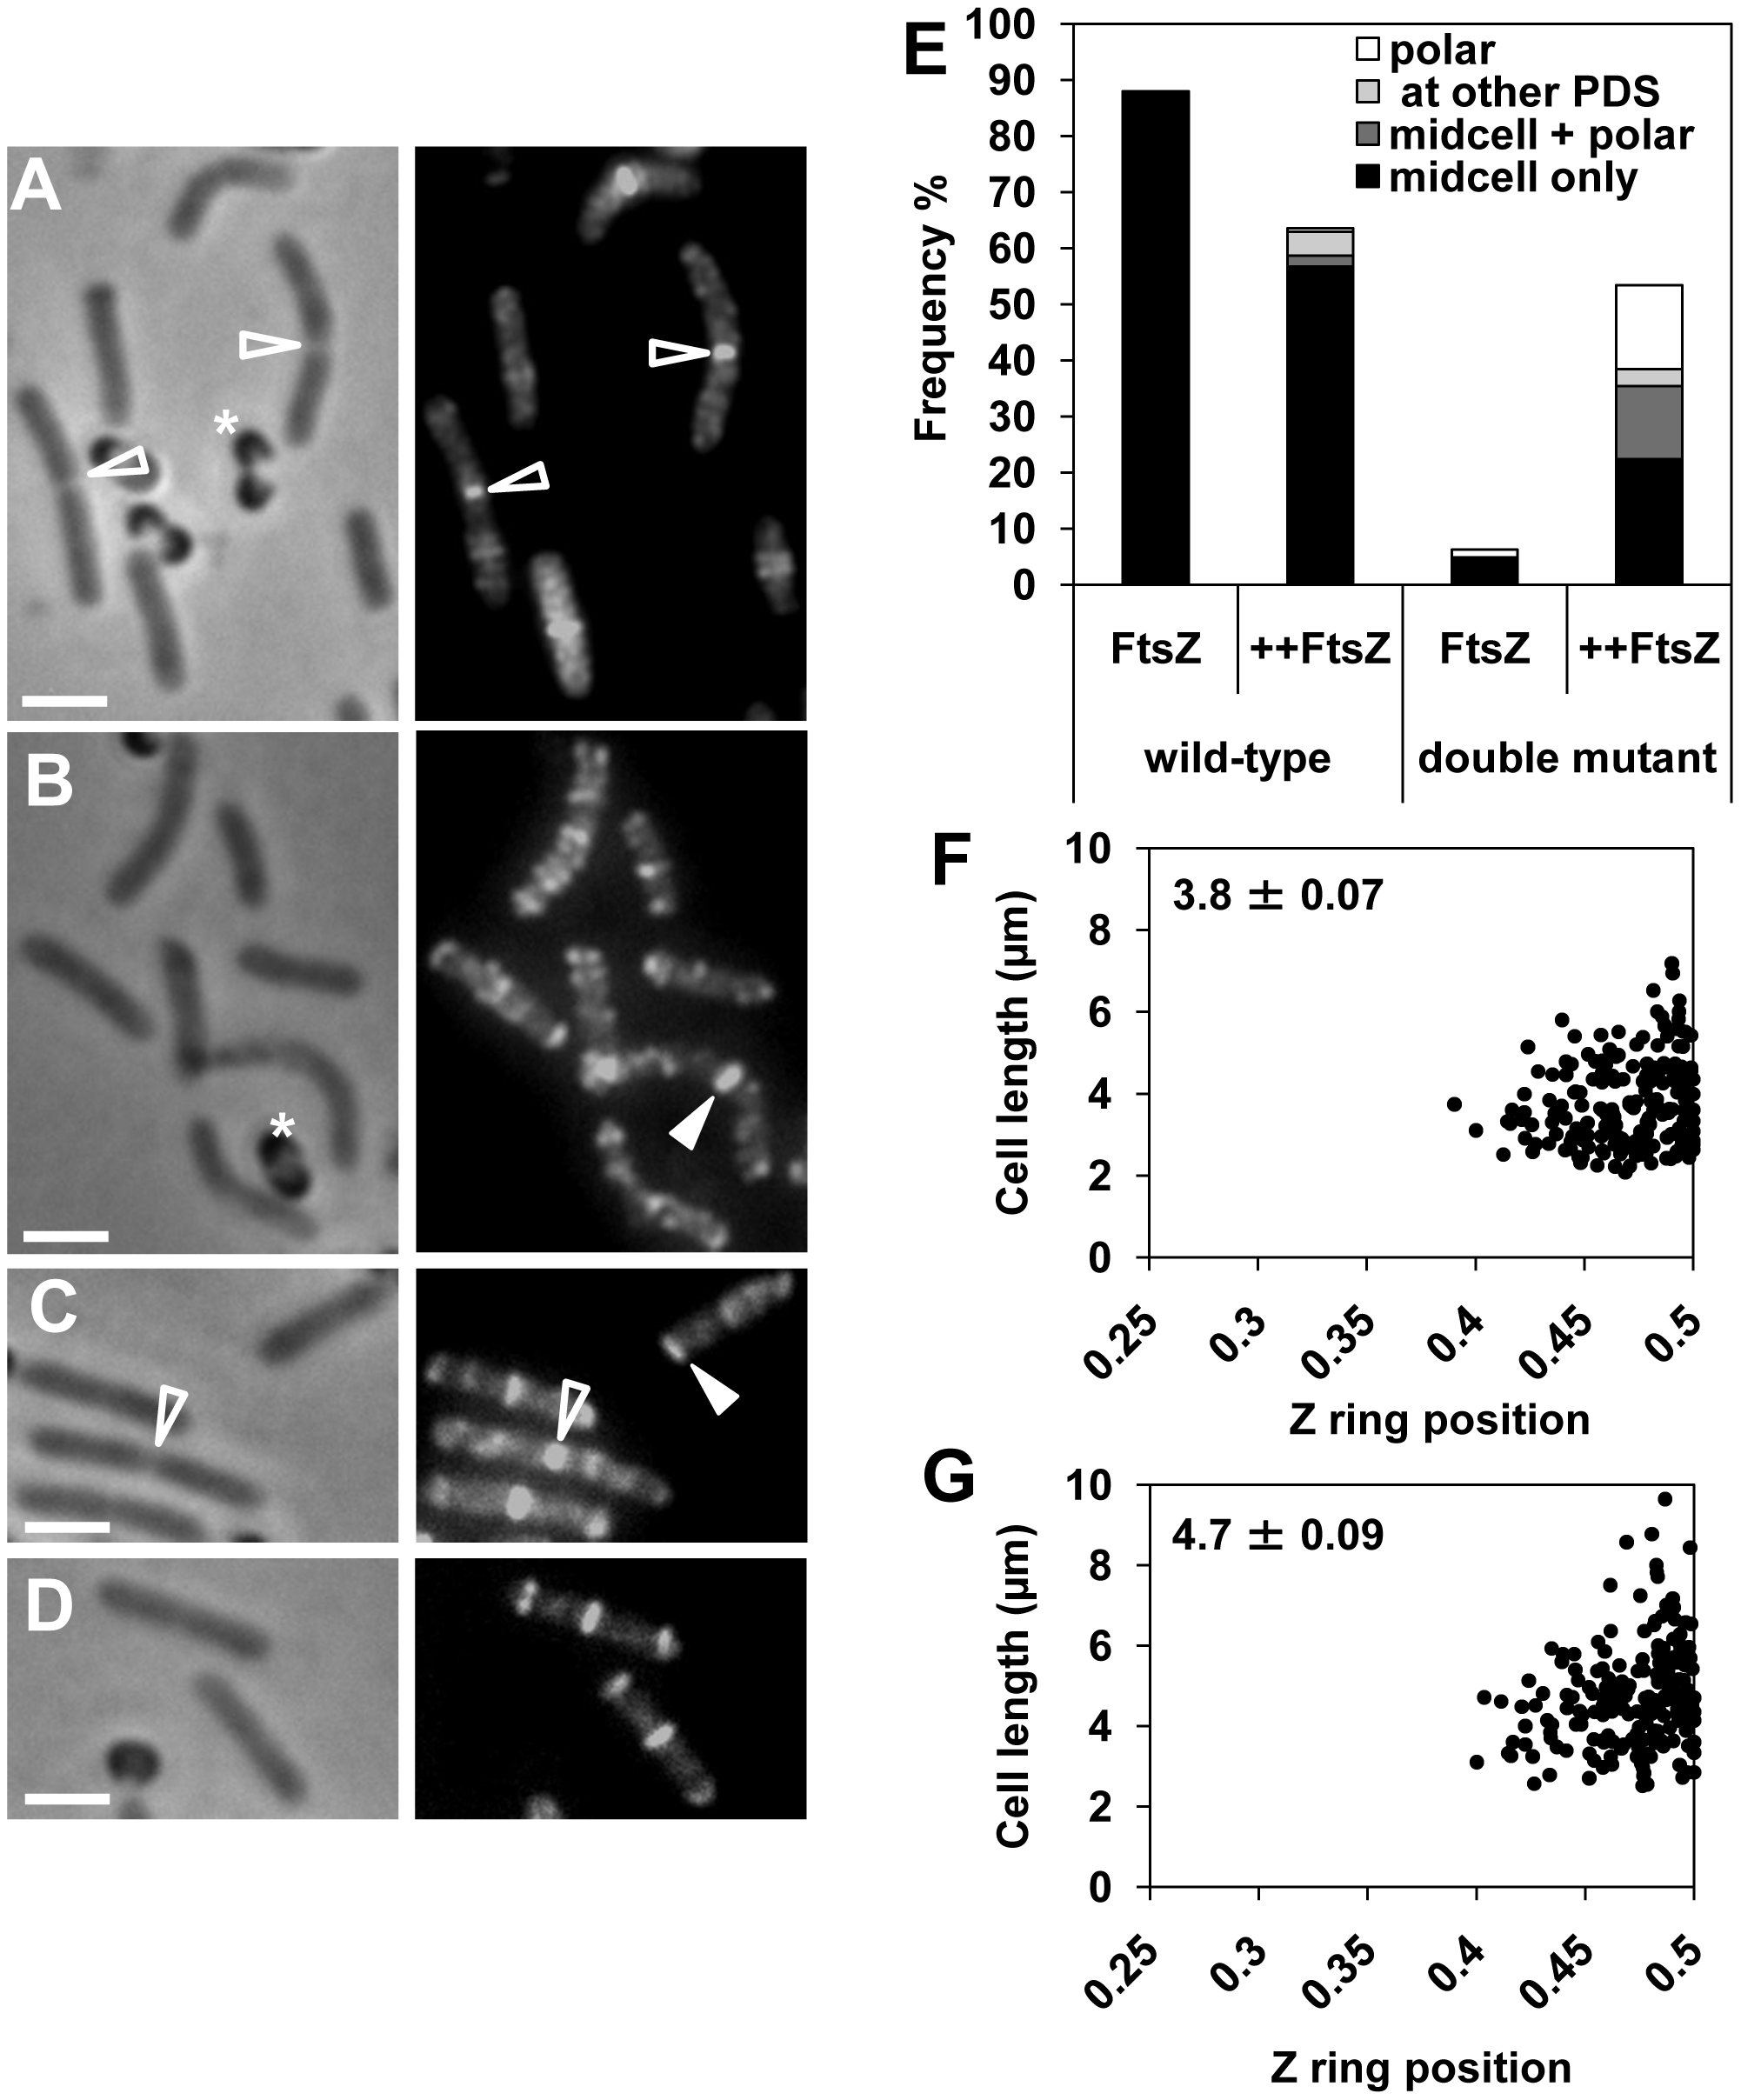 FtsZ overproduction reduces the delay in Z ring assembly at midcell in the <i>noc minCD</i> double mutant.